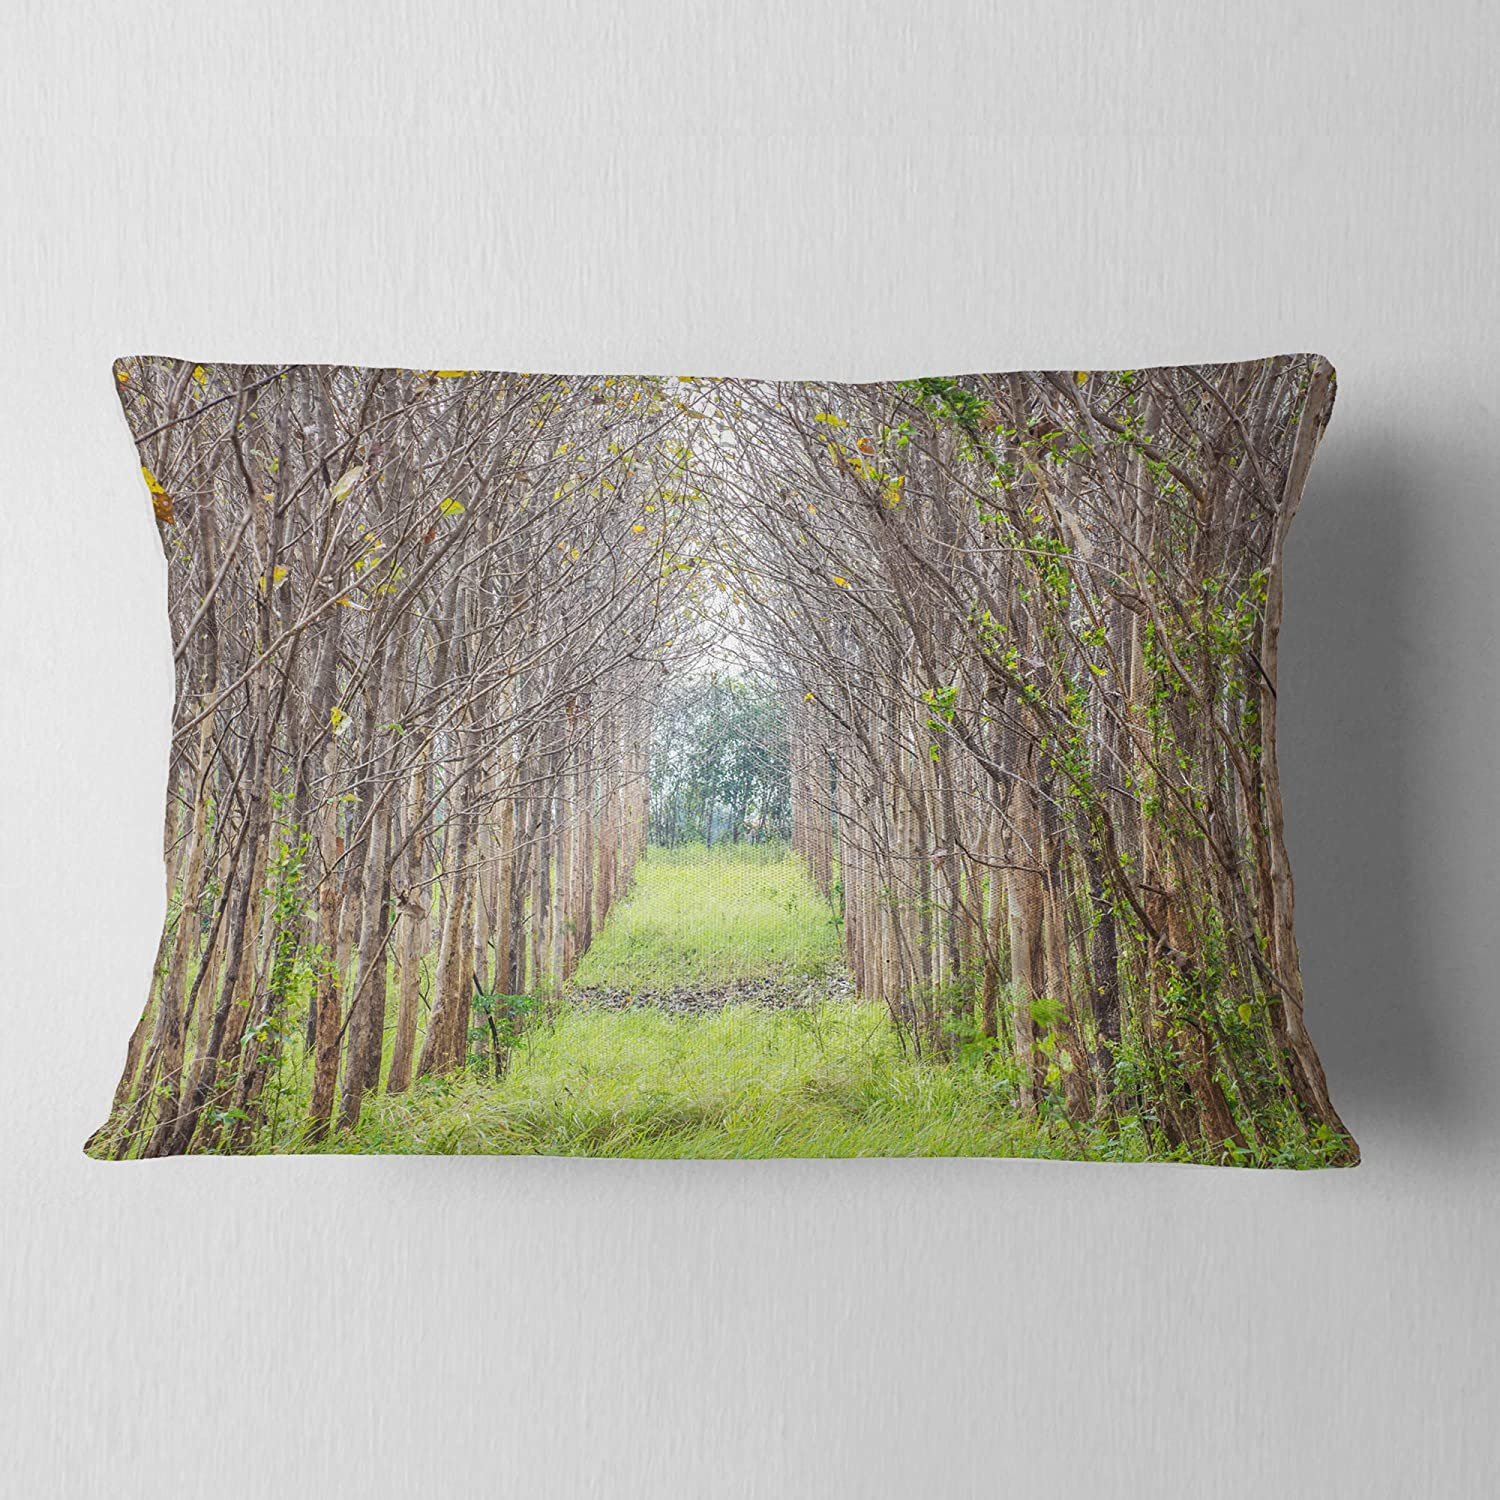 in Designart CU9733-12-20 Pathway Through Fall Green Trees Landscape Photography Lumbar Cushion Cover for Living Room Sofa Throw Pillow 12 in x 20 in Insert Printed On Both Side